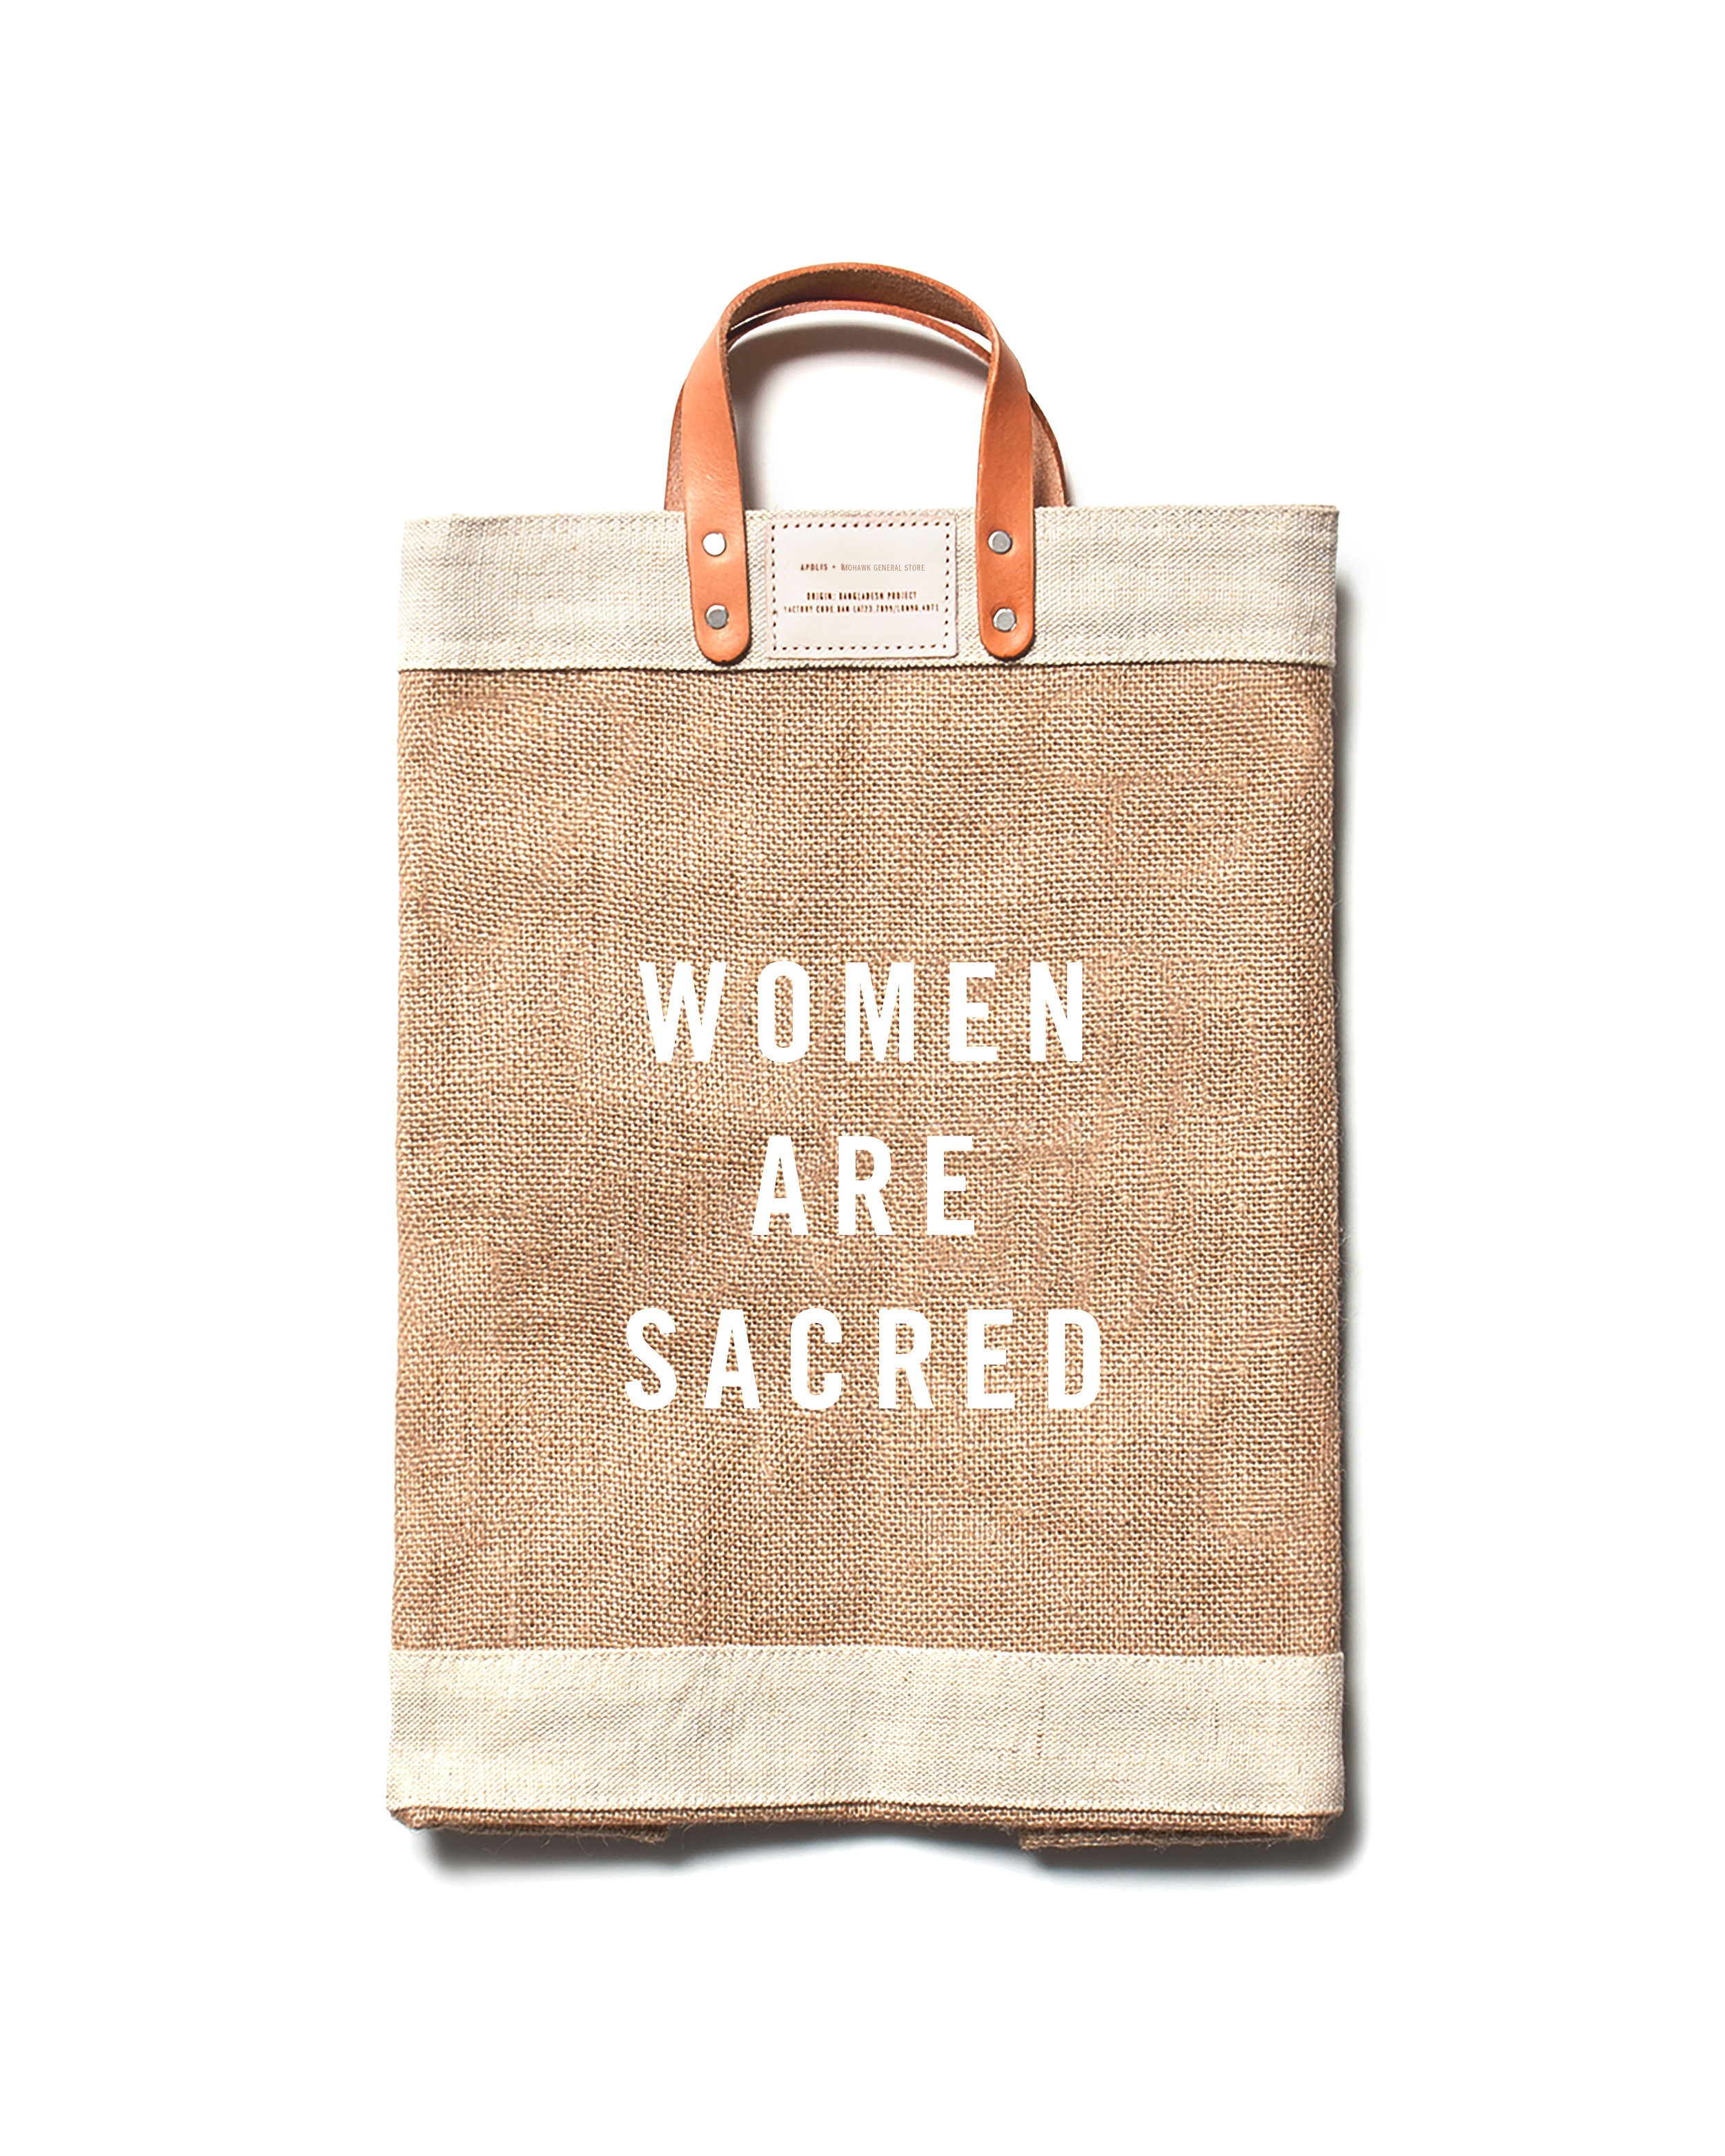 MARKET BAG | $68 - As featured in the 2017 LA Times Gift Guide, the WOMEN ARE SACRED market bag collaboration between socially conscious brands Our Sacred Women and Apolis is timely for those wanting to give a gift with substance. The powerful message aside, these 100% jute fiber, waterproof bags are handcrafted in Bangladesh by a growing female artisan cooperative, and 10% of proceeds from each sale is donated to The Breathe Networkto support survivors of sexual violence. This is just one of several signature products by Our Sacred Women- a movement to restore women to a place of reverence through specialty gifts that help women feel seen, valued, and honored.